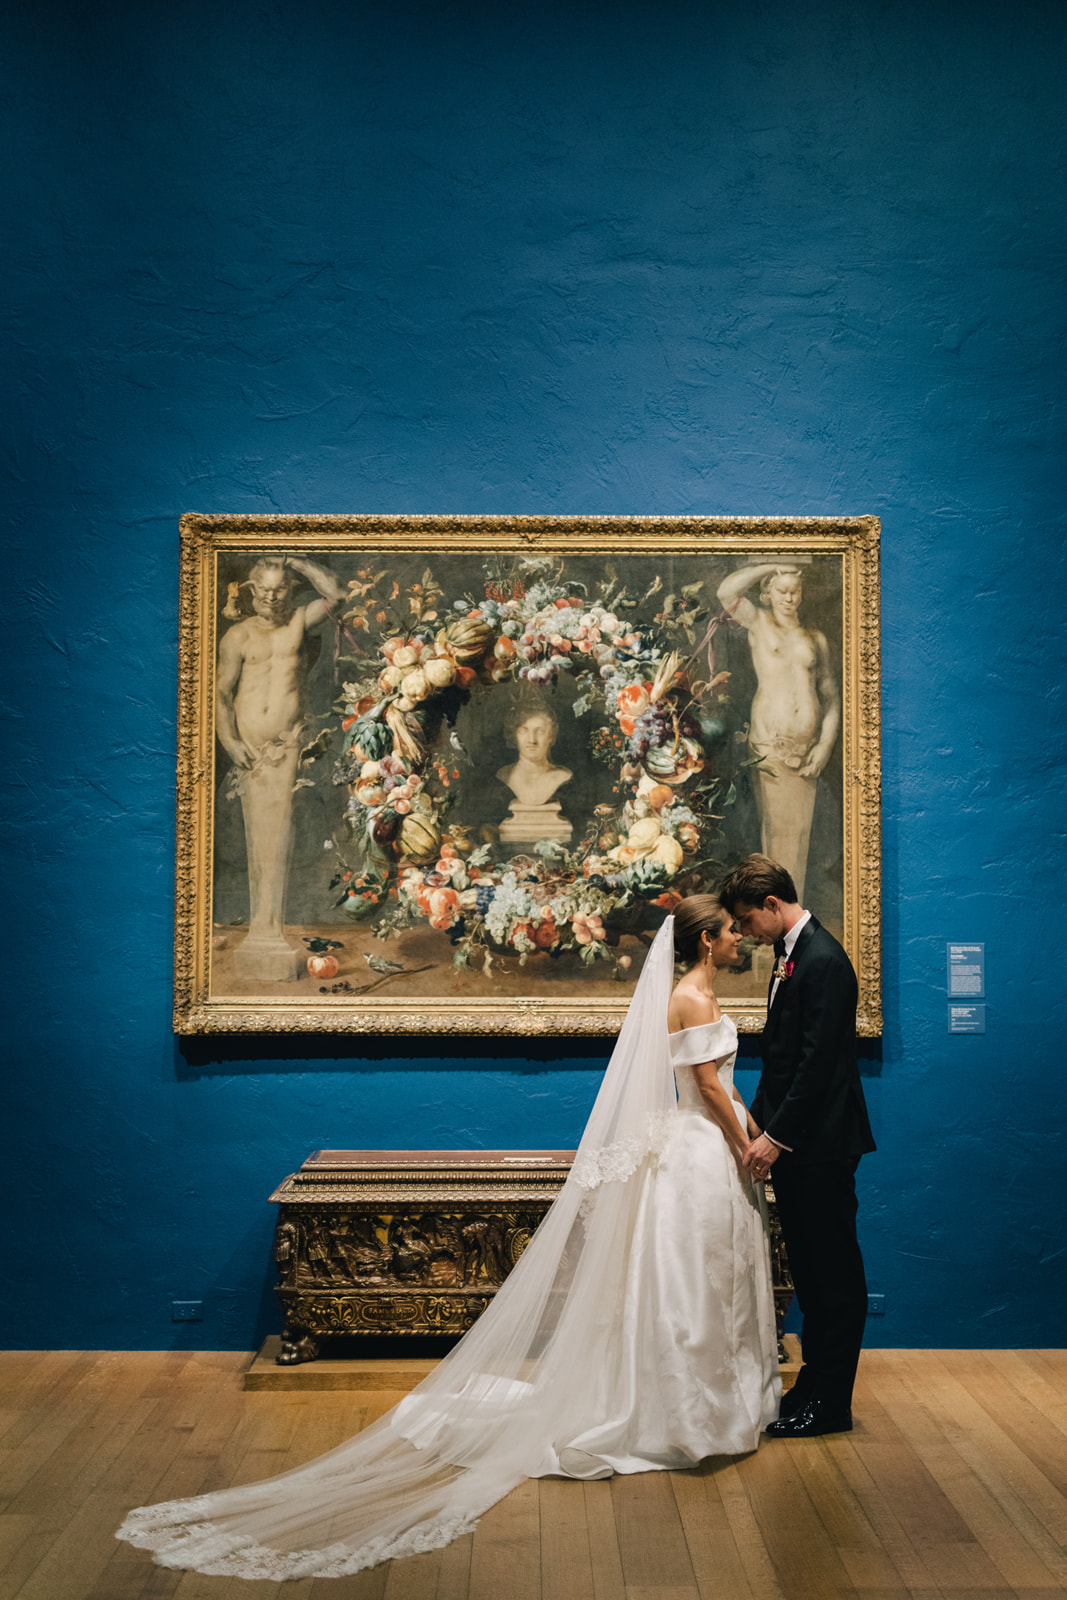 Elizabeth and Jake's Fall Wedding at the Philadelphia Art Museum | www.thestyledbride.com